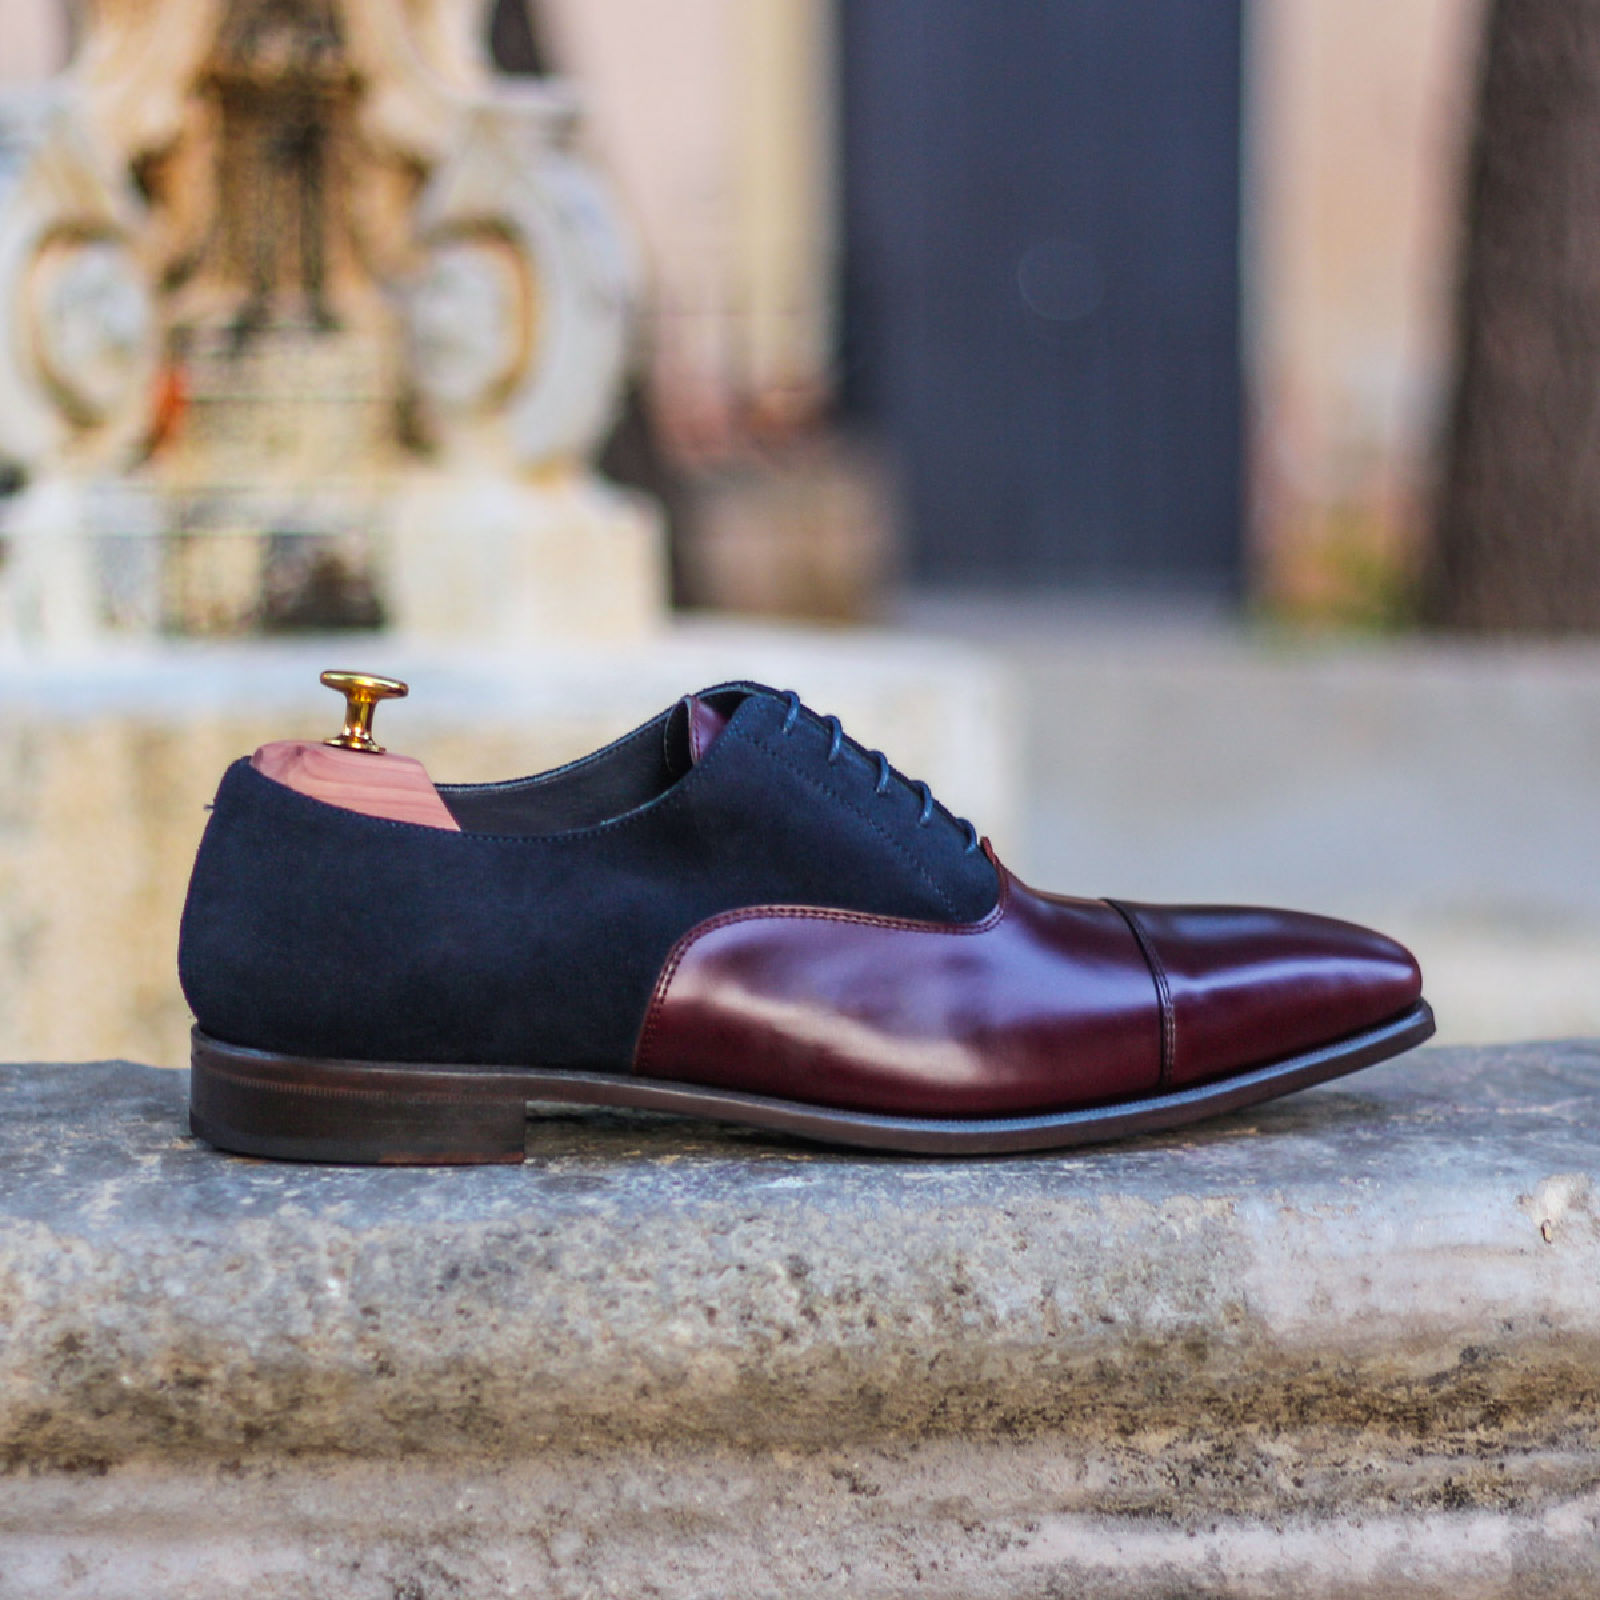 Oxford navy lux suede + burgundy polished calf : 240€